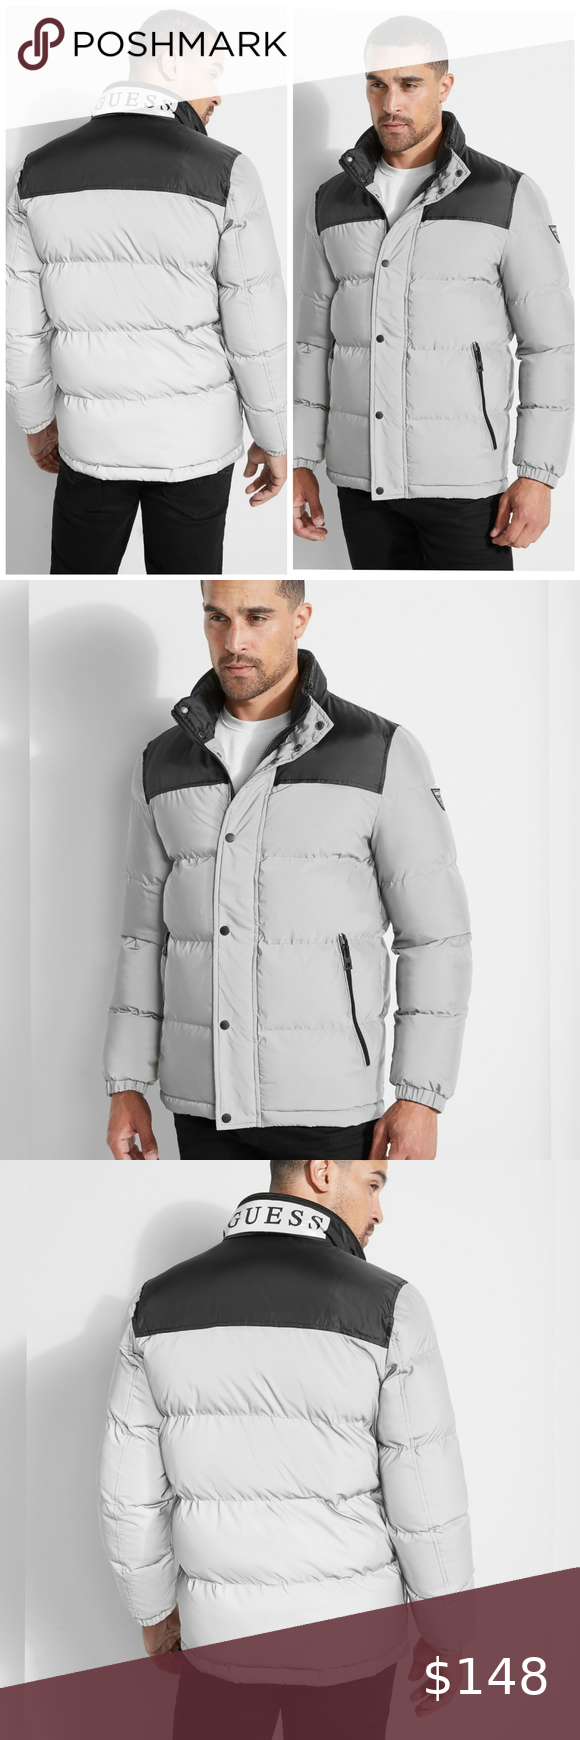 New Guess Discovery Reflective Puffer Jacket Sz L In 2020 Jackets Puffer Jackets Puffer [ 1740 x 580 Pixel ]